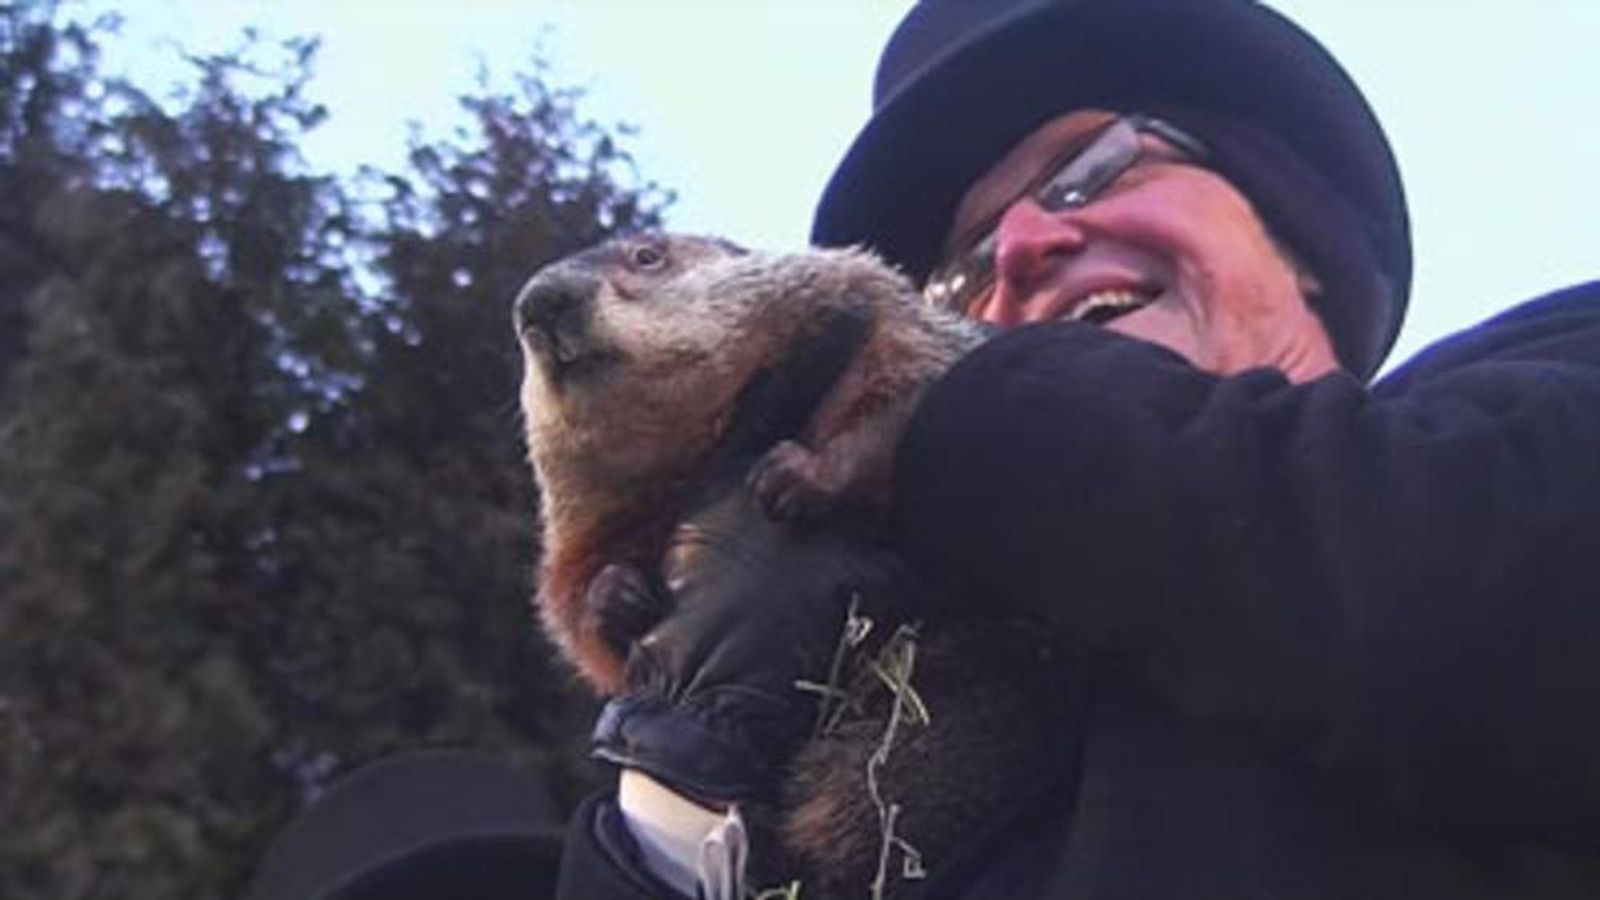 Punxsutawney Phil on Groundhog Day in Pennsylvania, USA.